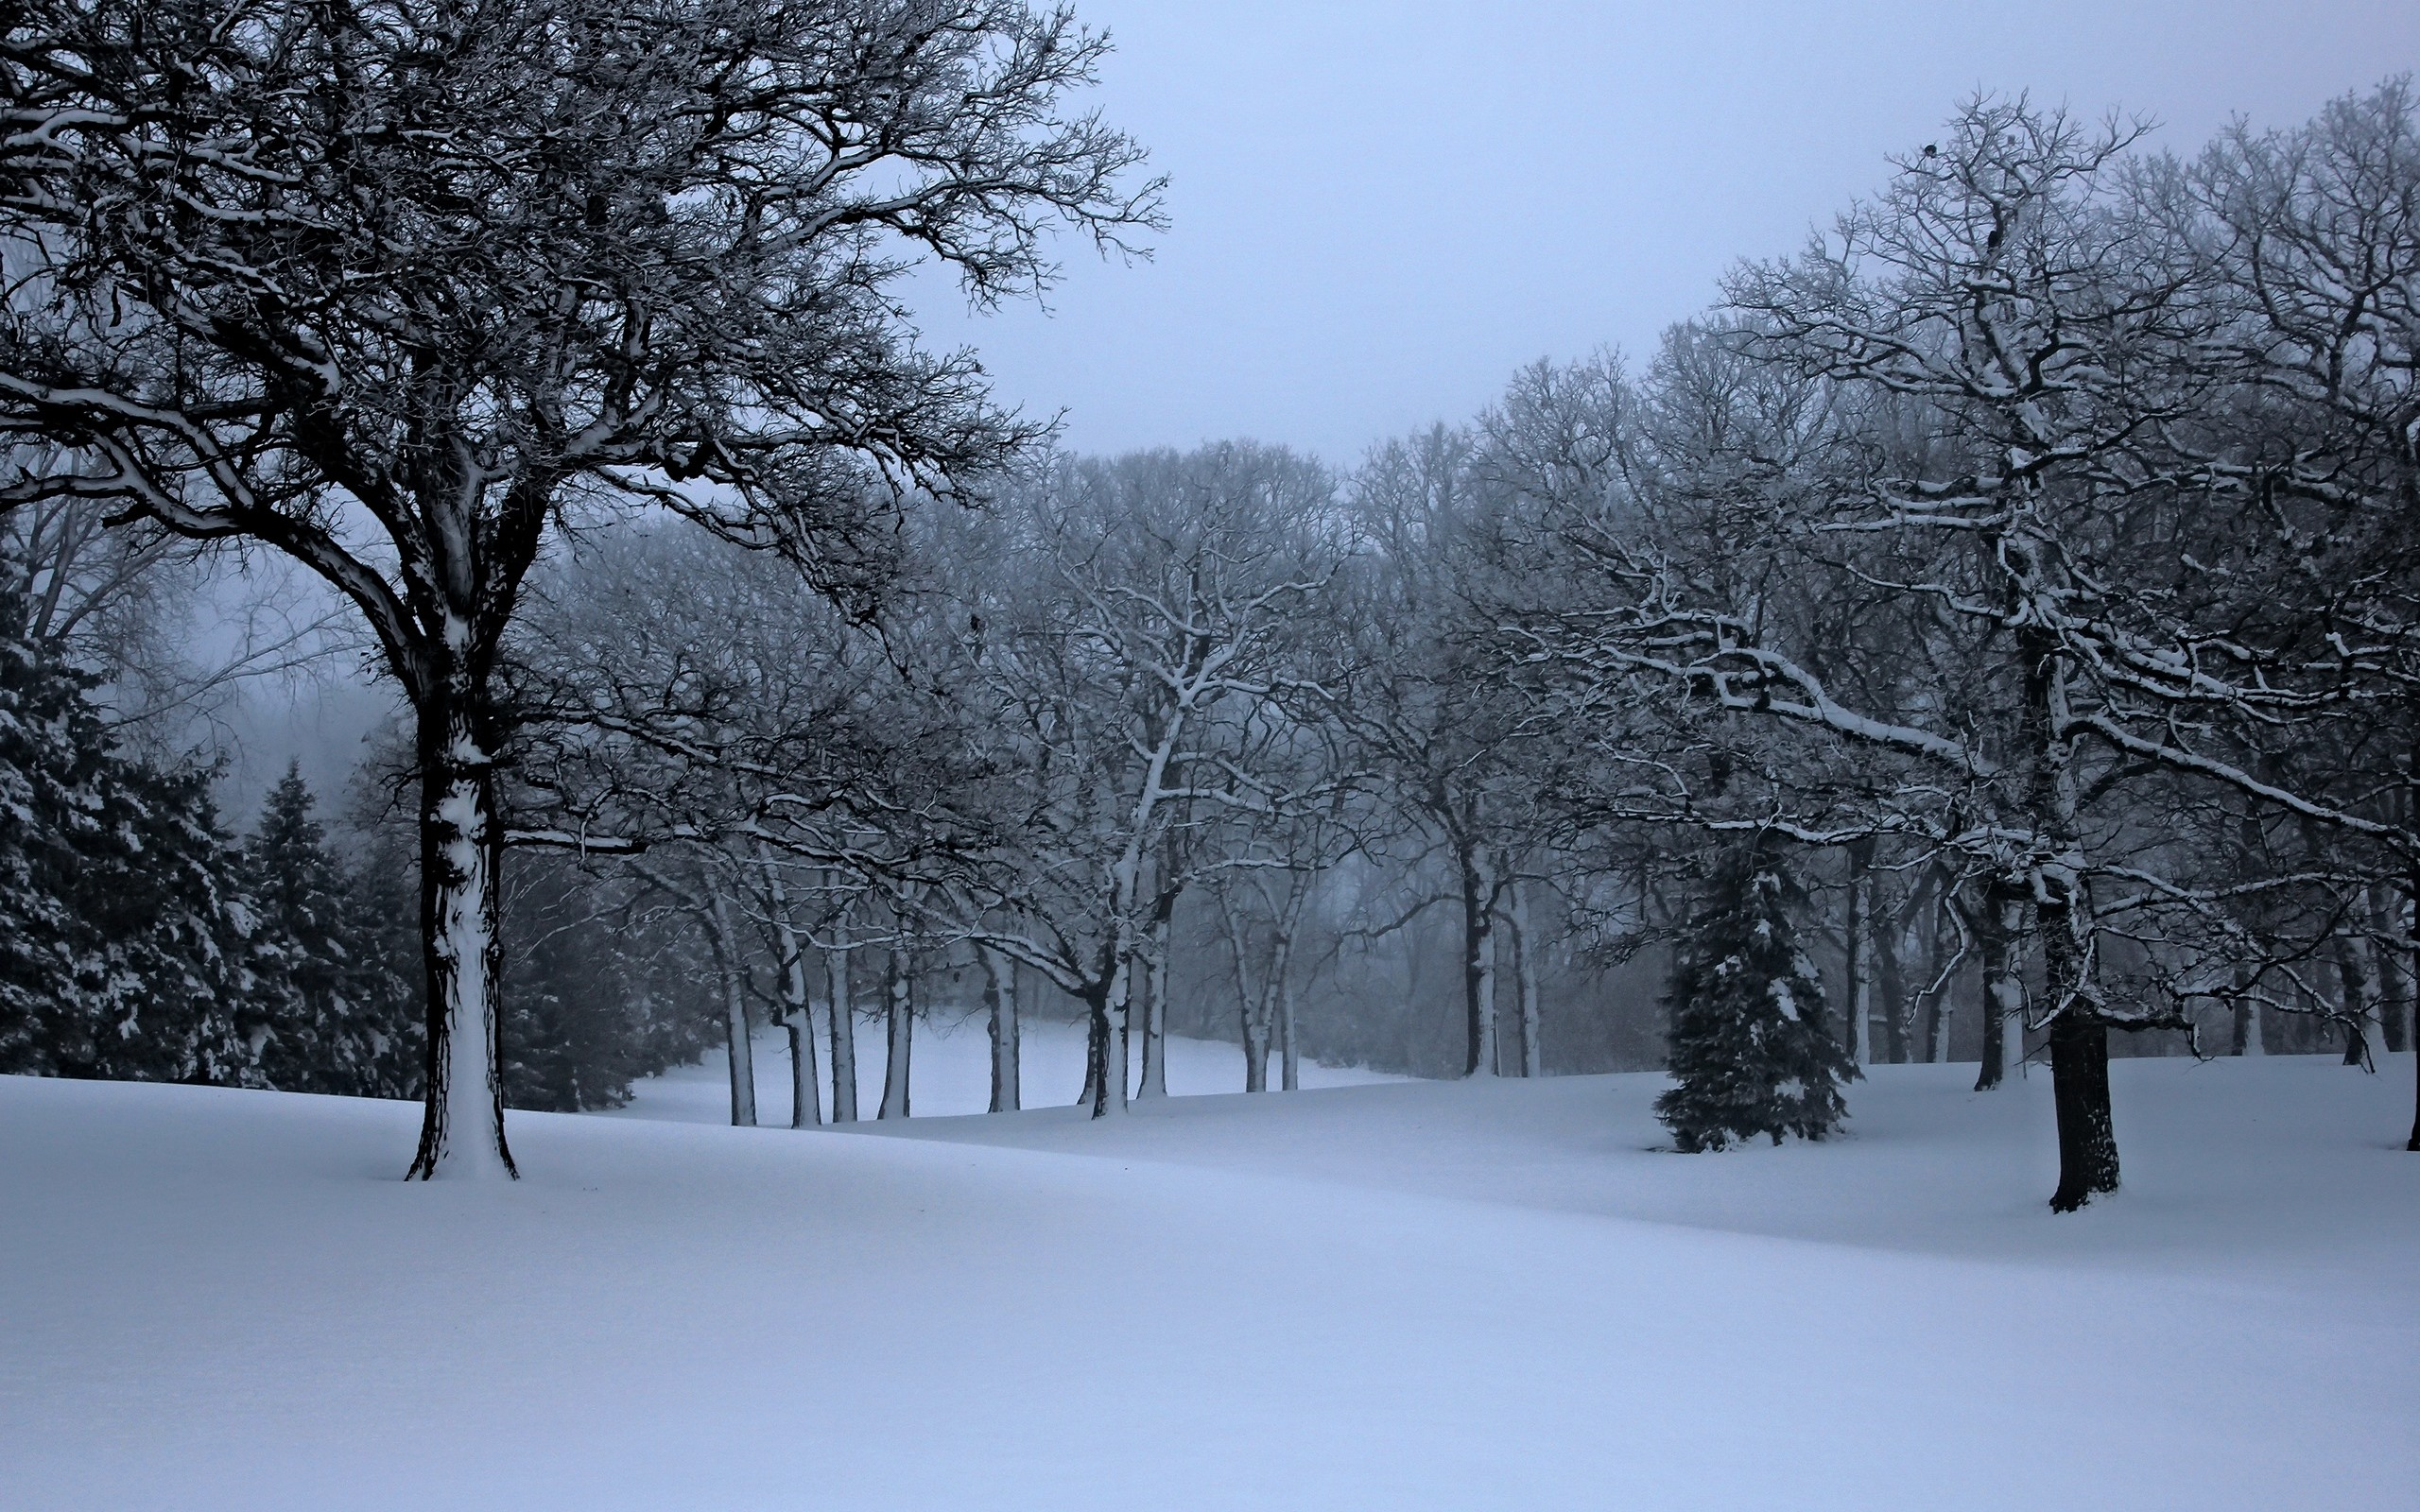 Wallpaper Winter Trees Snow Nature Scenery 2560x1600 Hd